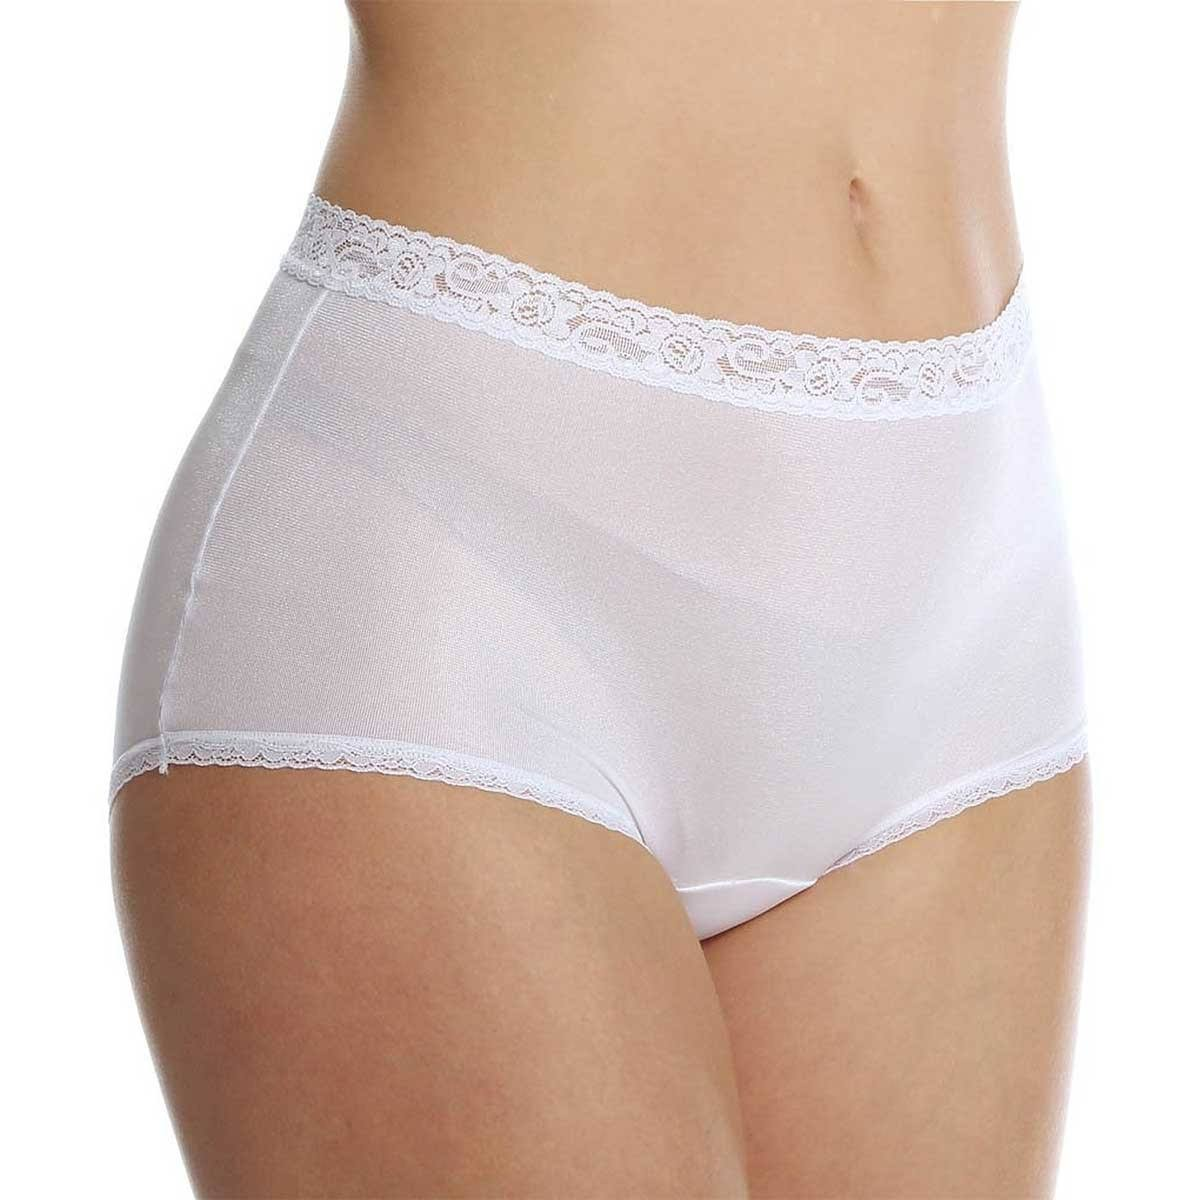 Cuddl Duds LR102 Lorraine Nylon Full Brief with Lace Trim Panty, Women's, Size: 8, White